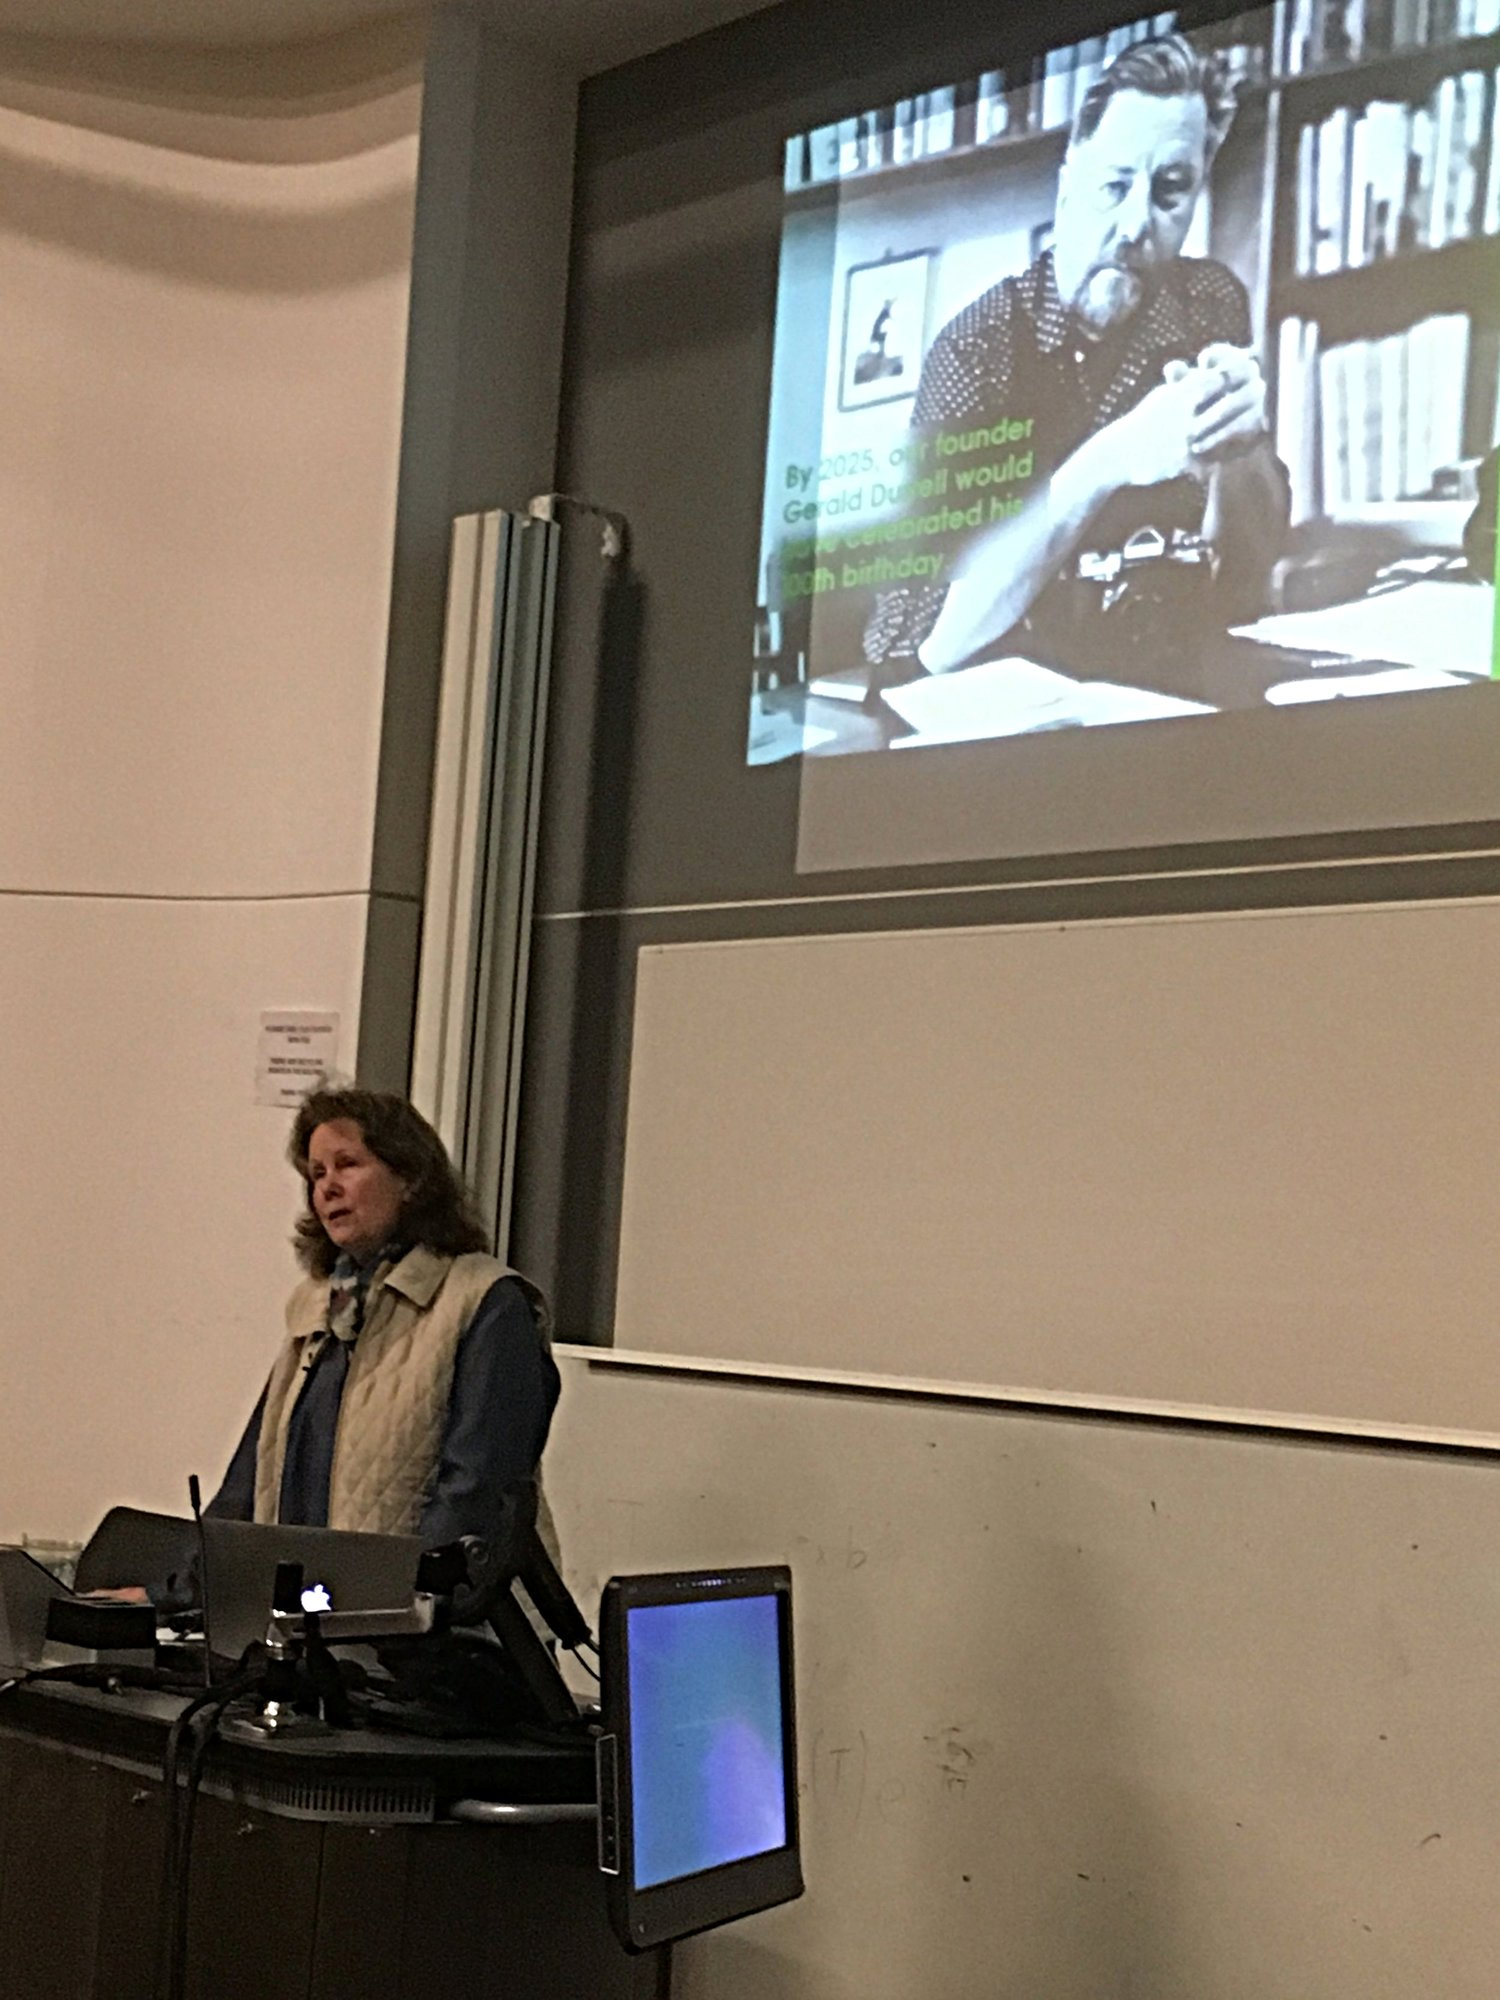 DR LEE DURRELL GIVING A LECTURE AT THE UNIVERSITY OF EXETER ENTITLED 'ISLAND INSPIRED CONSERVATION'